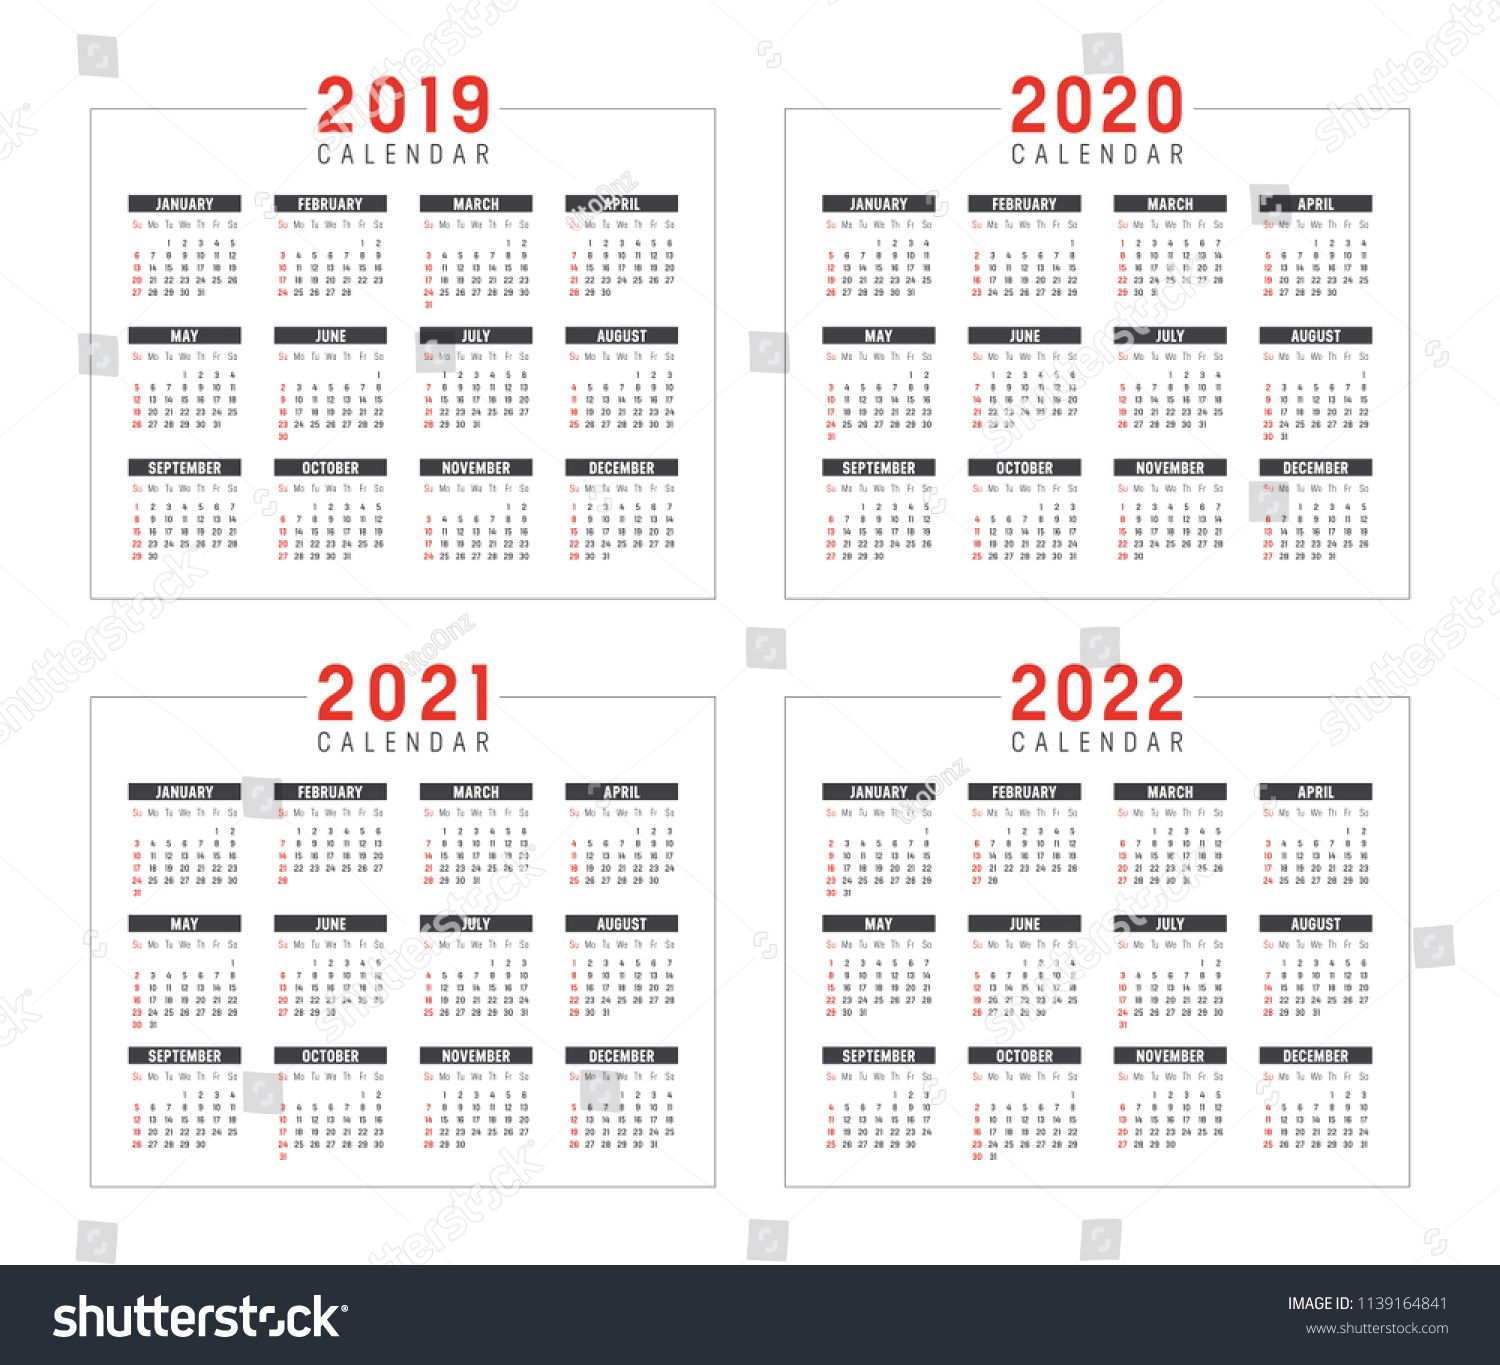 Set Of Minimalist Calendars Years 2019 2020 2021 2022 Weeks Start Sunday On White Background Vector Template Minimalist Calendar White Background Calendar